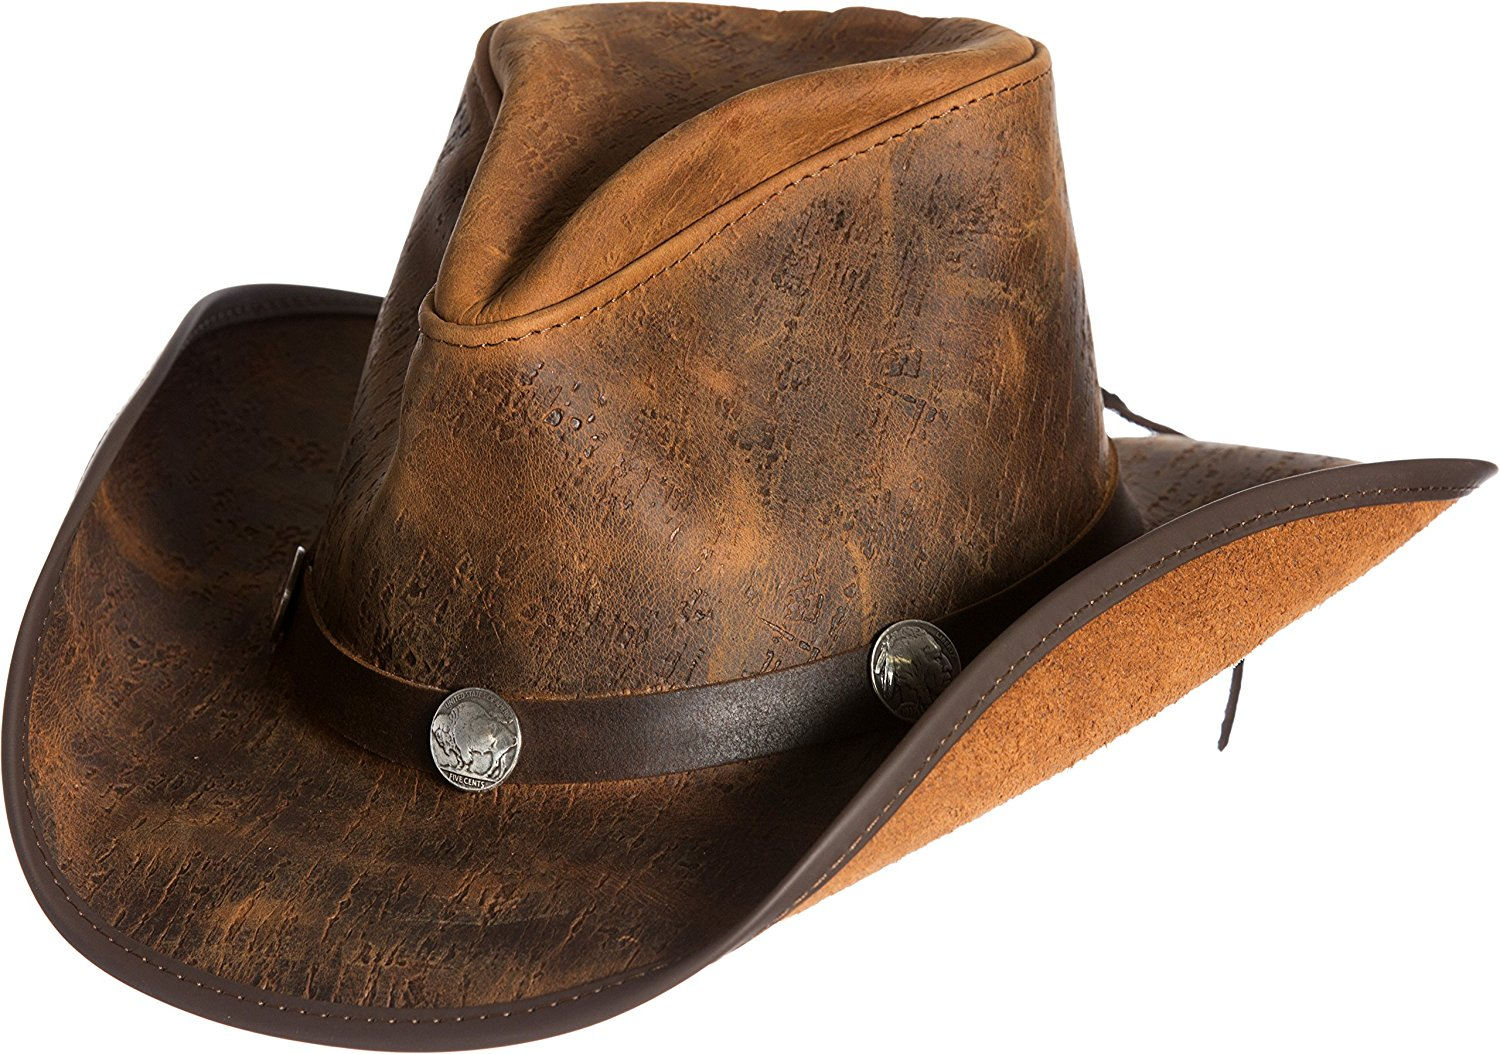 cfbcc175863c9 Get Quotations · Overland Sheepskin Co Cyclone Leather Cowboy Hat with  Buffalo Nickels